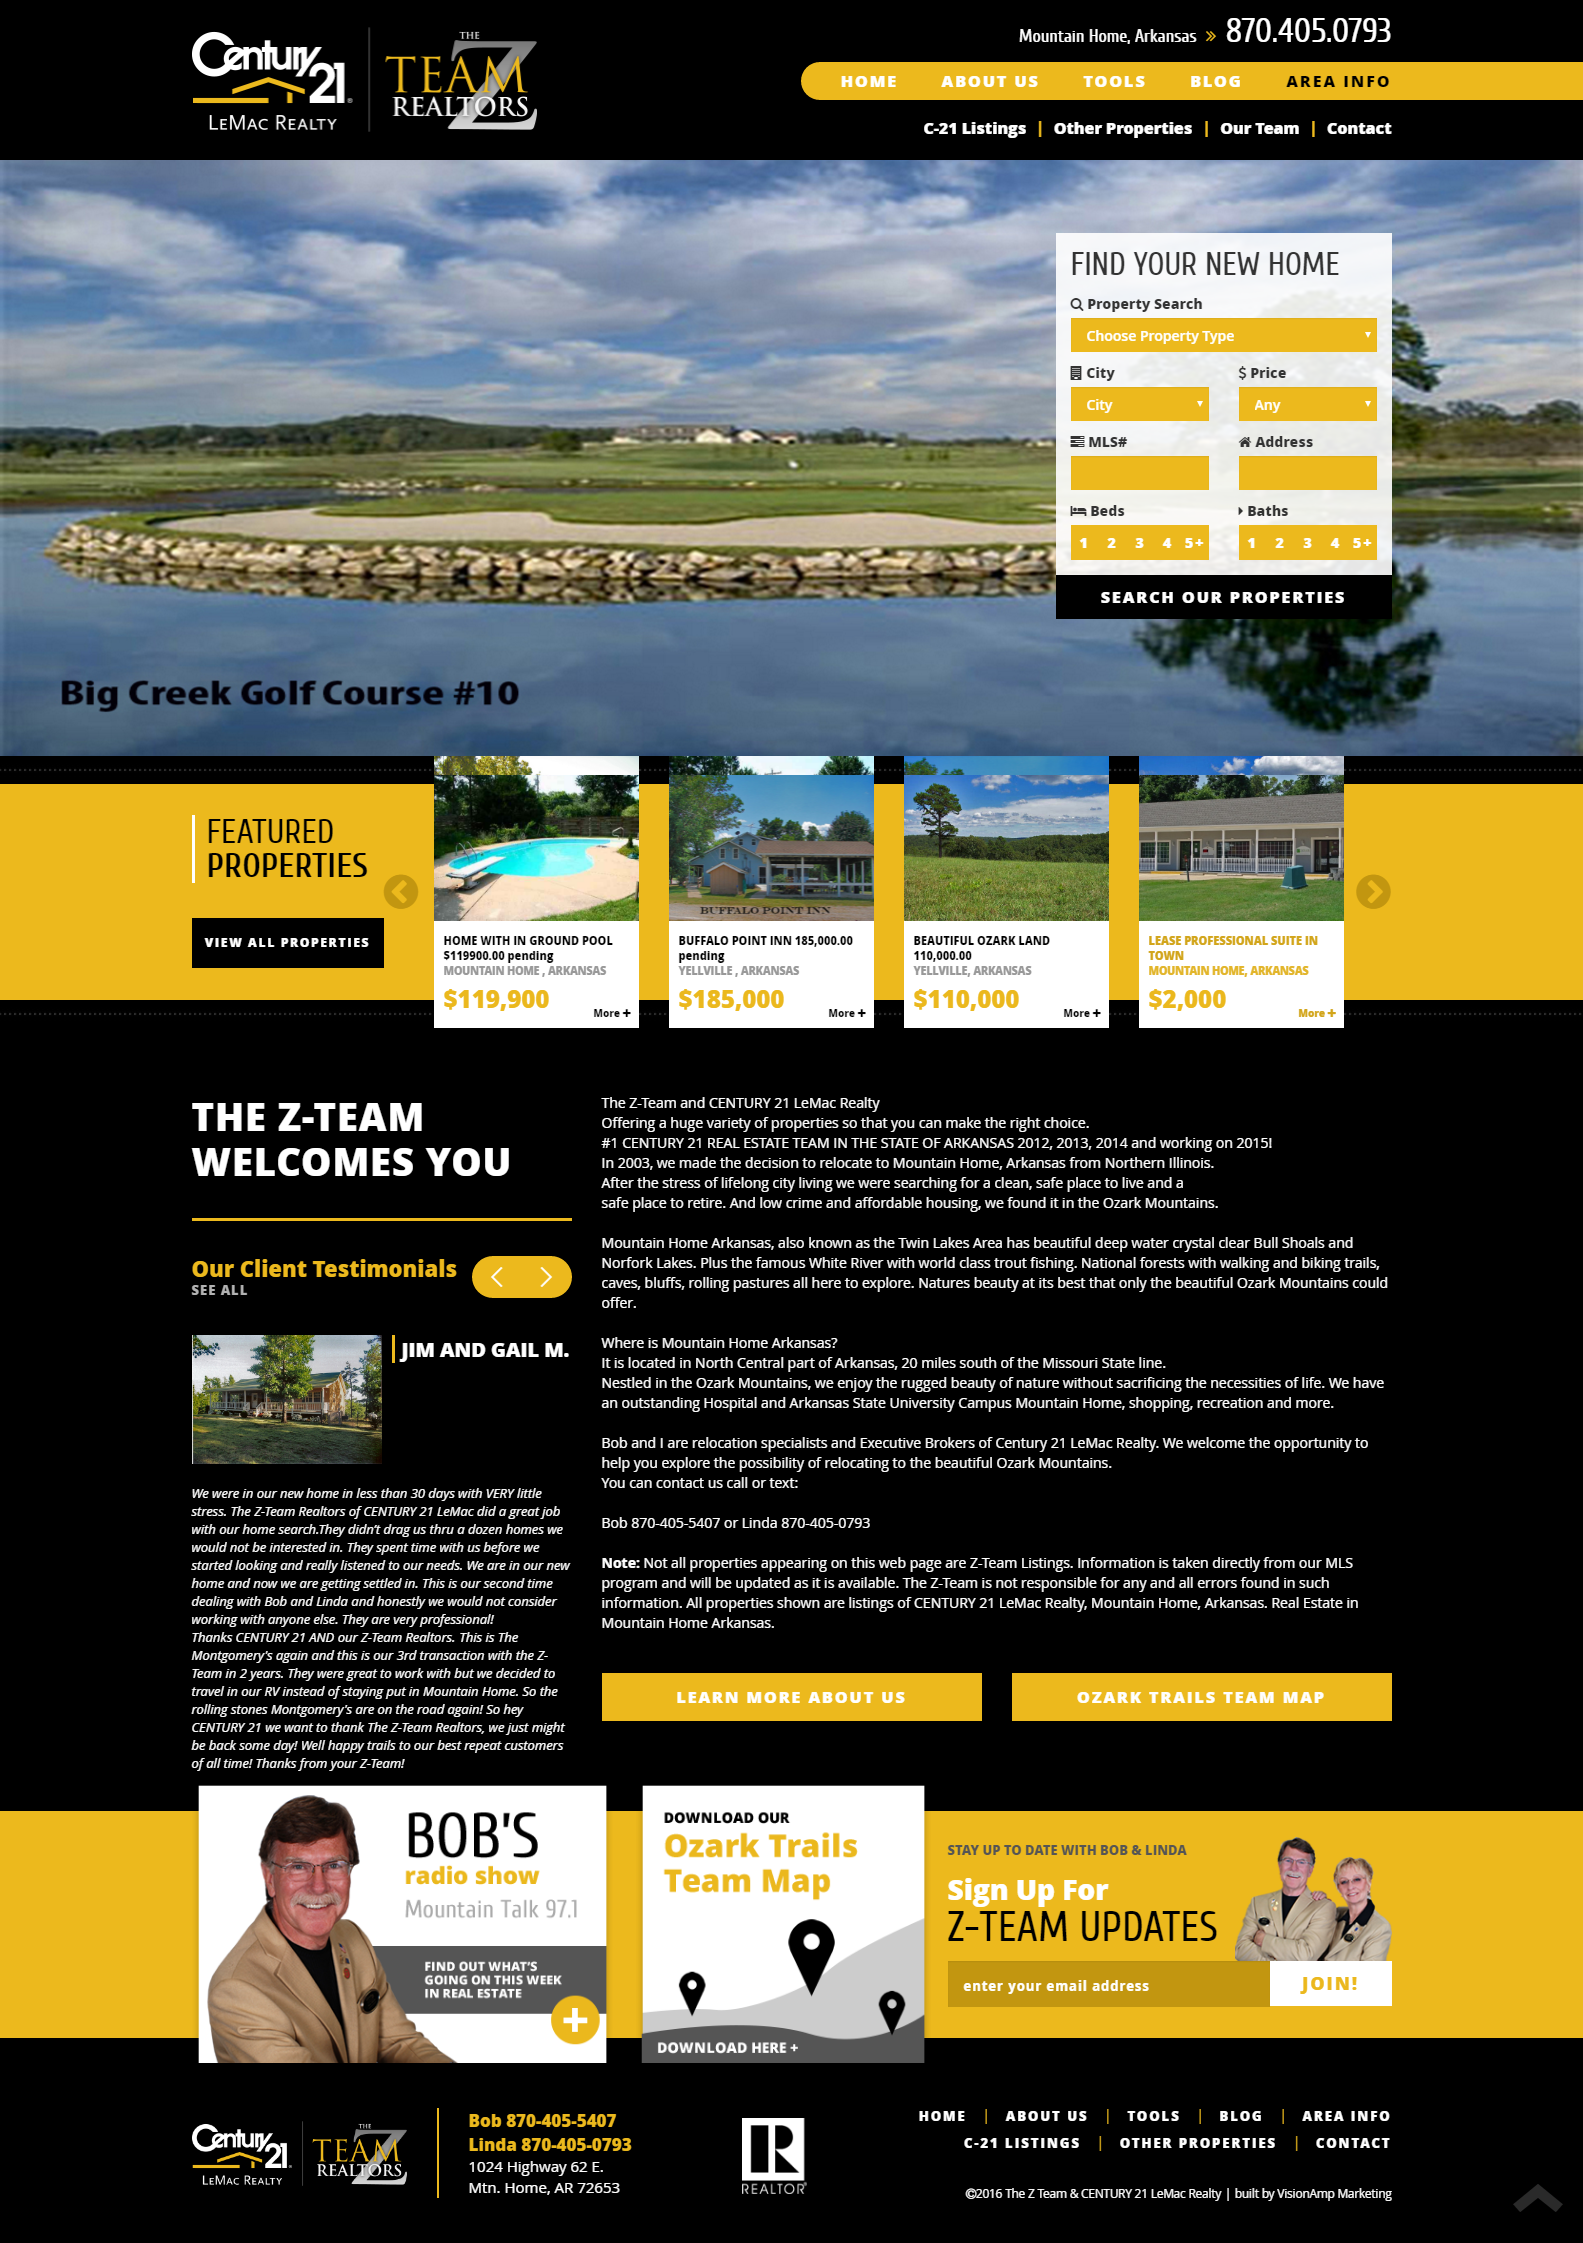 The Z Team Full Web Design Image